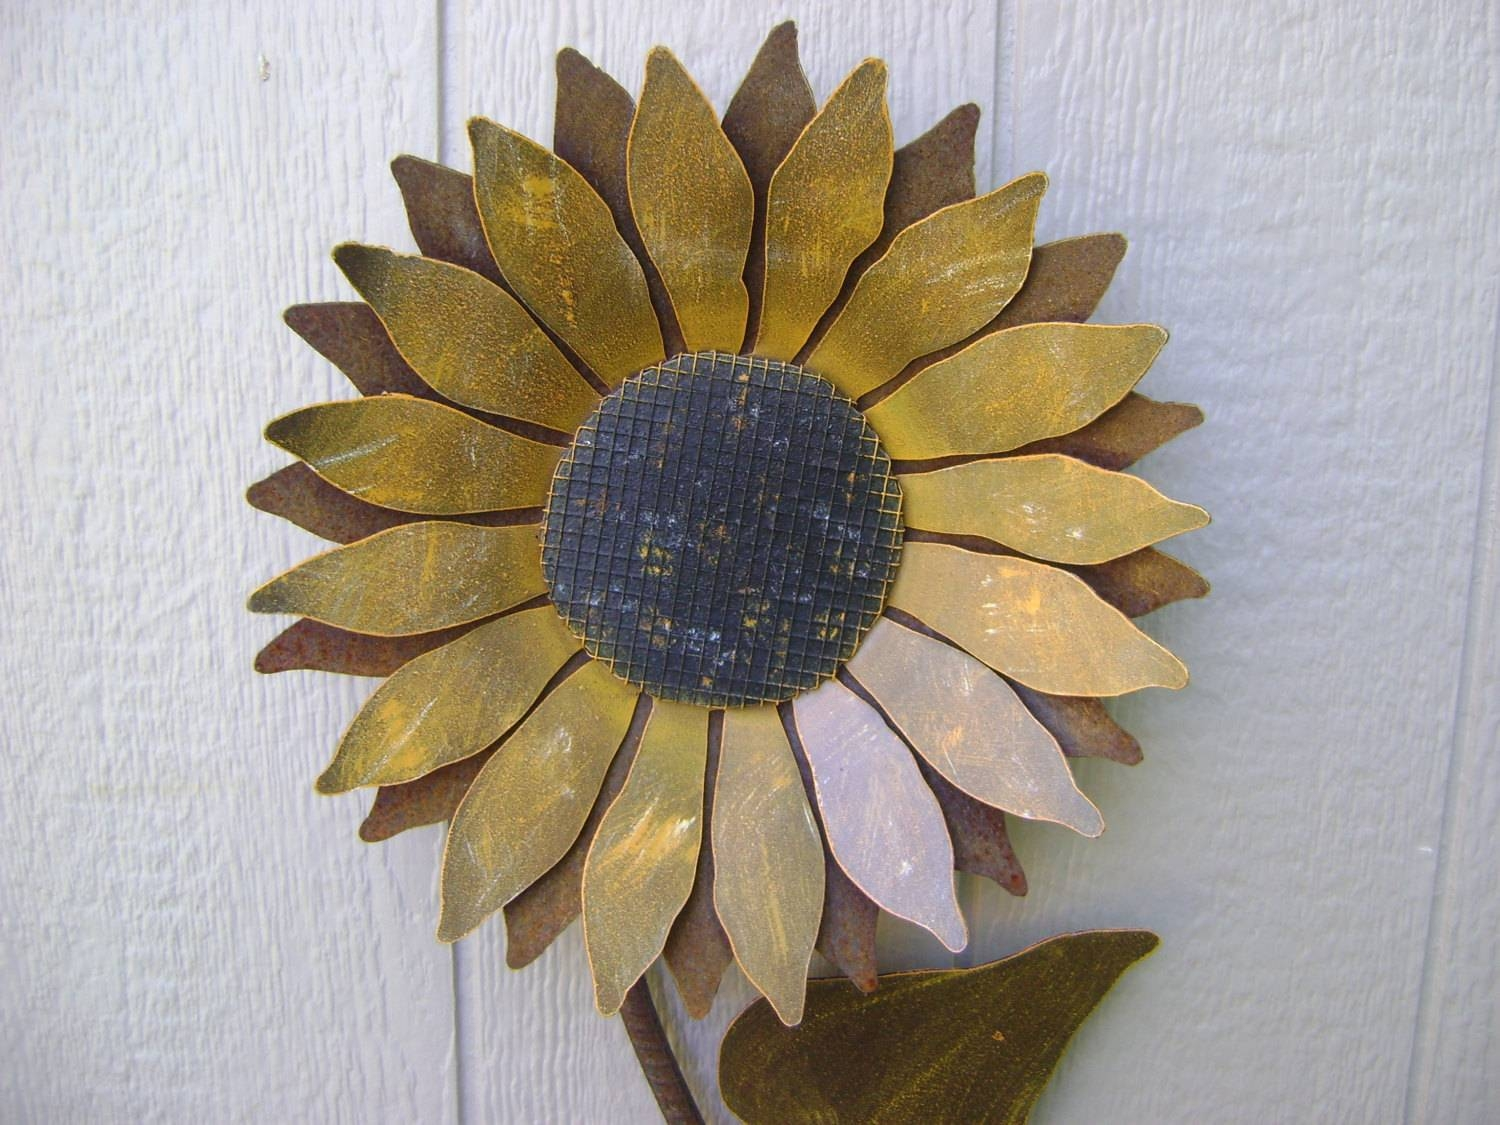 Sunflower Metal Garden Art Sunflower Wall Art Rusty Metal For Most Up To Date Metal Sunflower Yard Art (View 23 of 26)